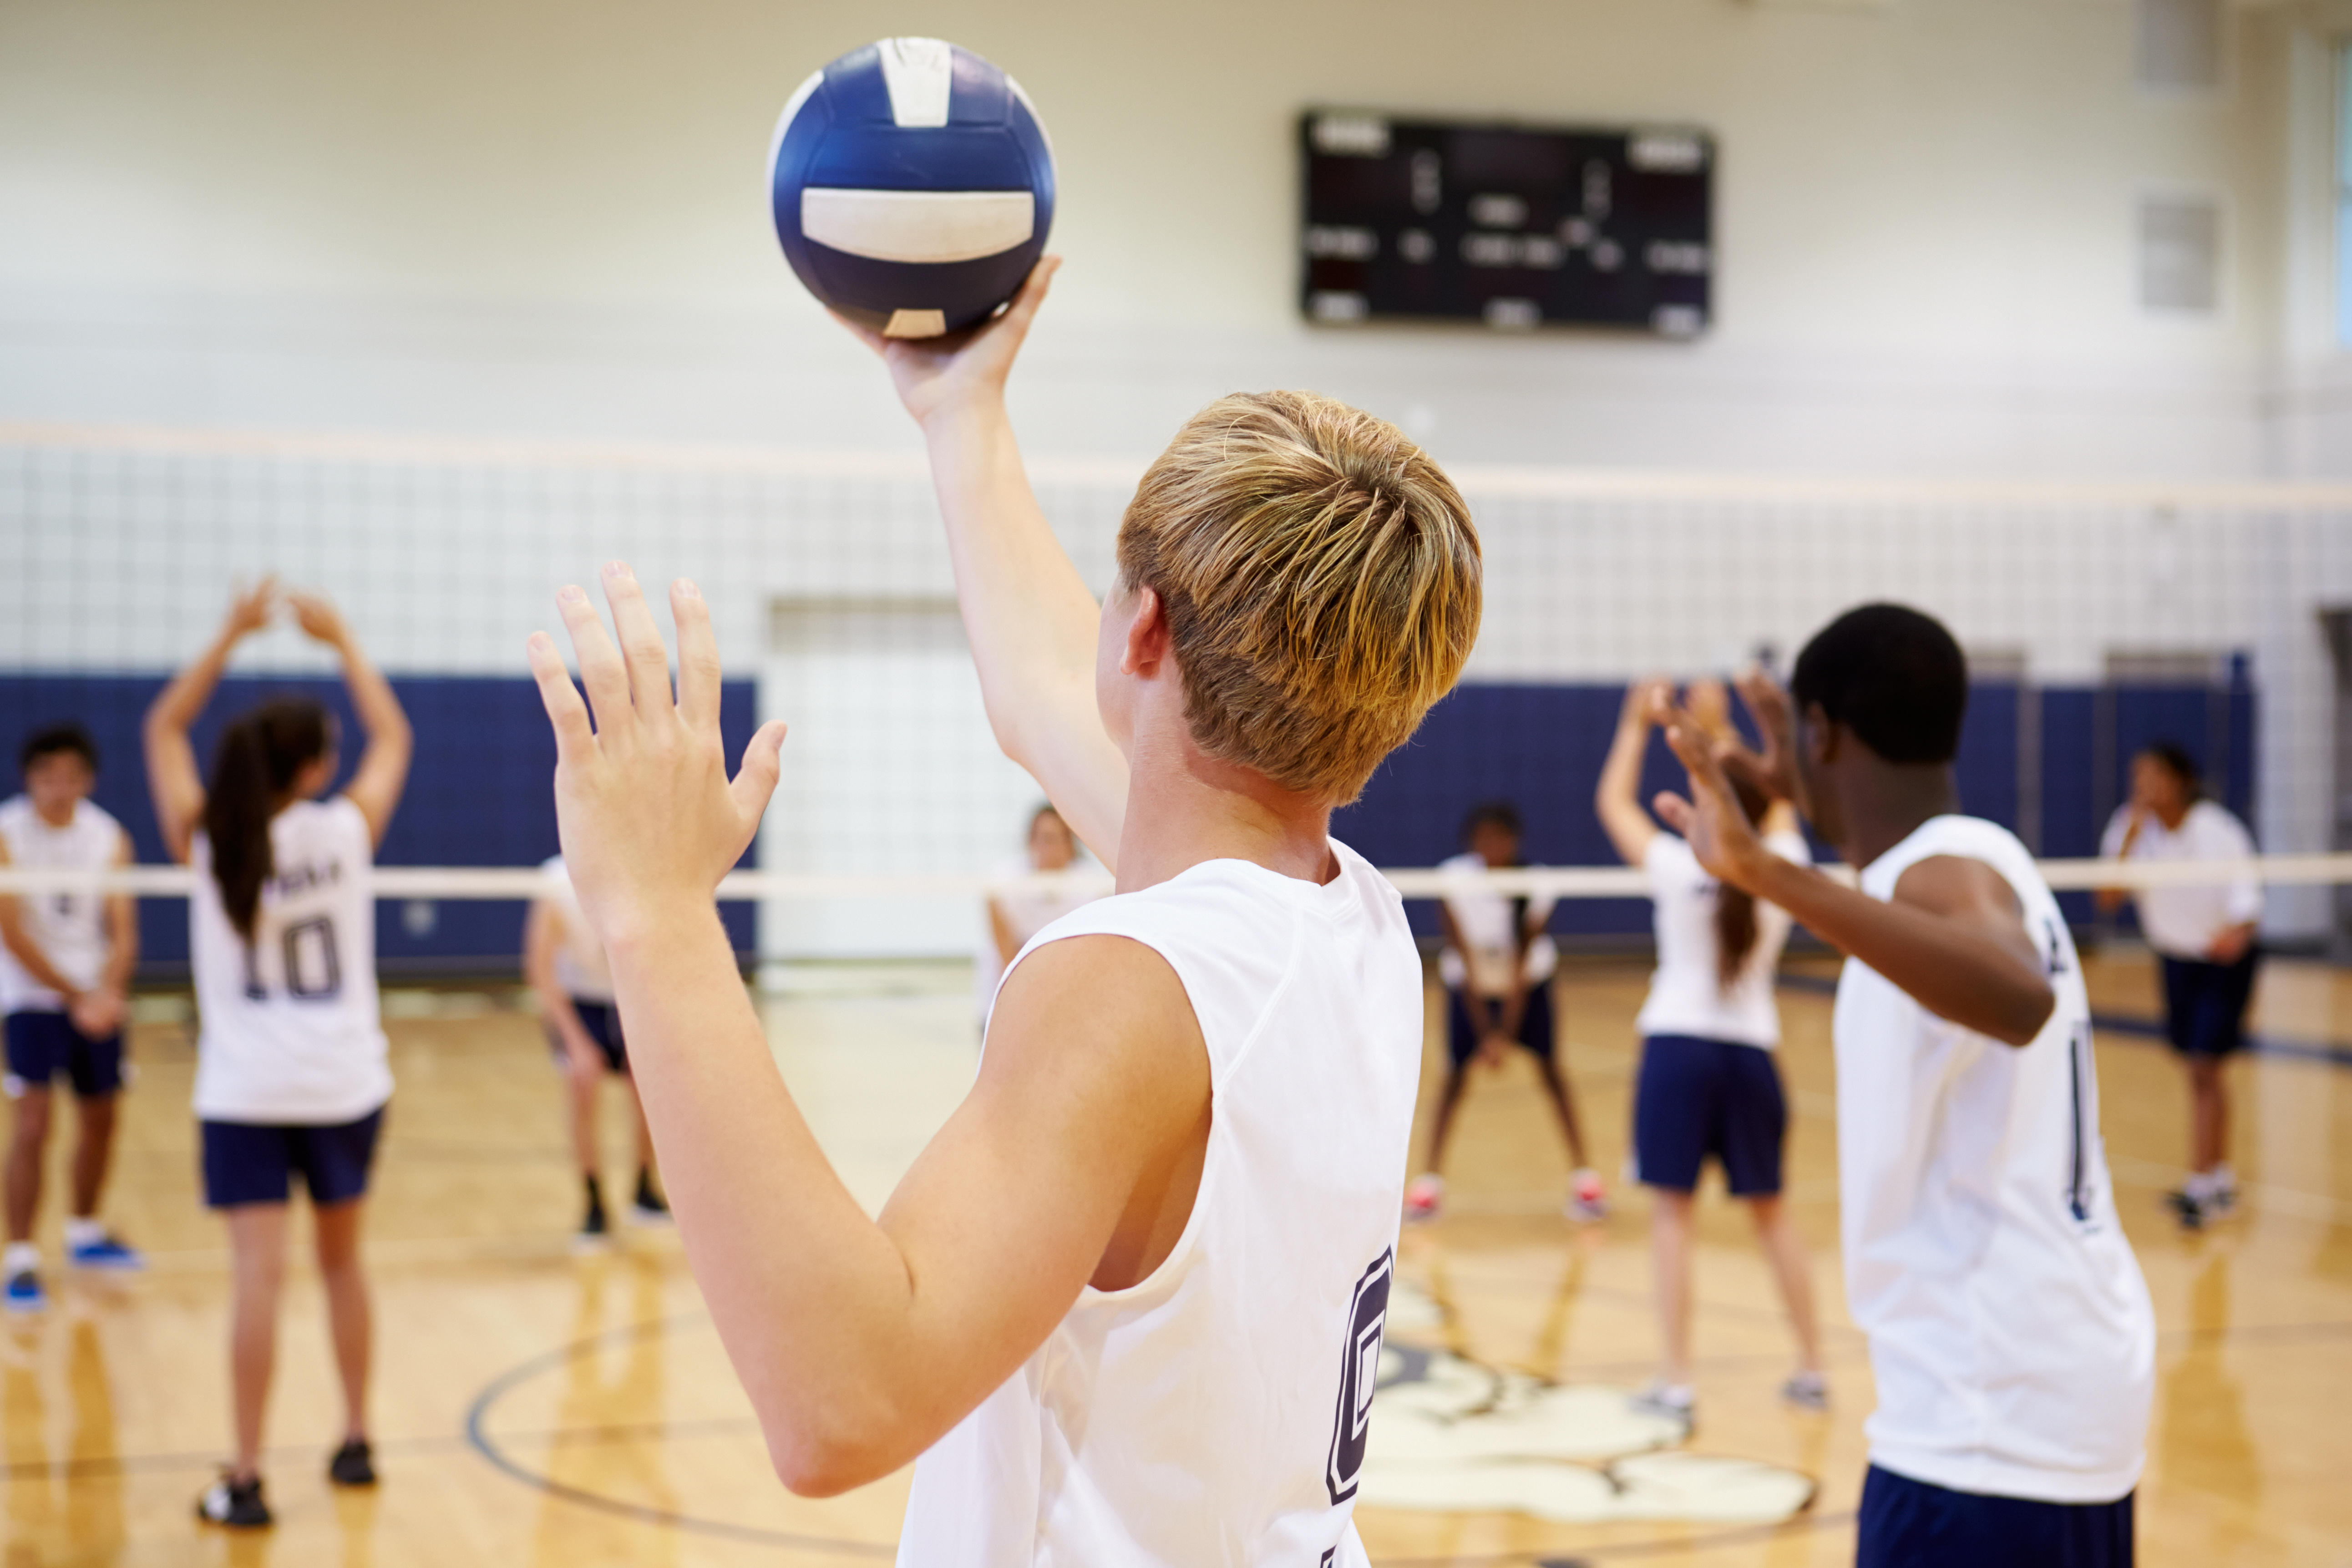 Shoulder Injuries in Volleyball